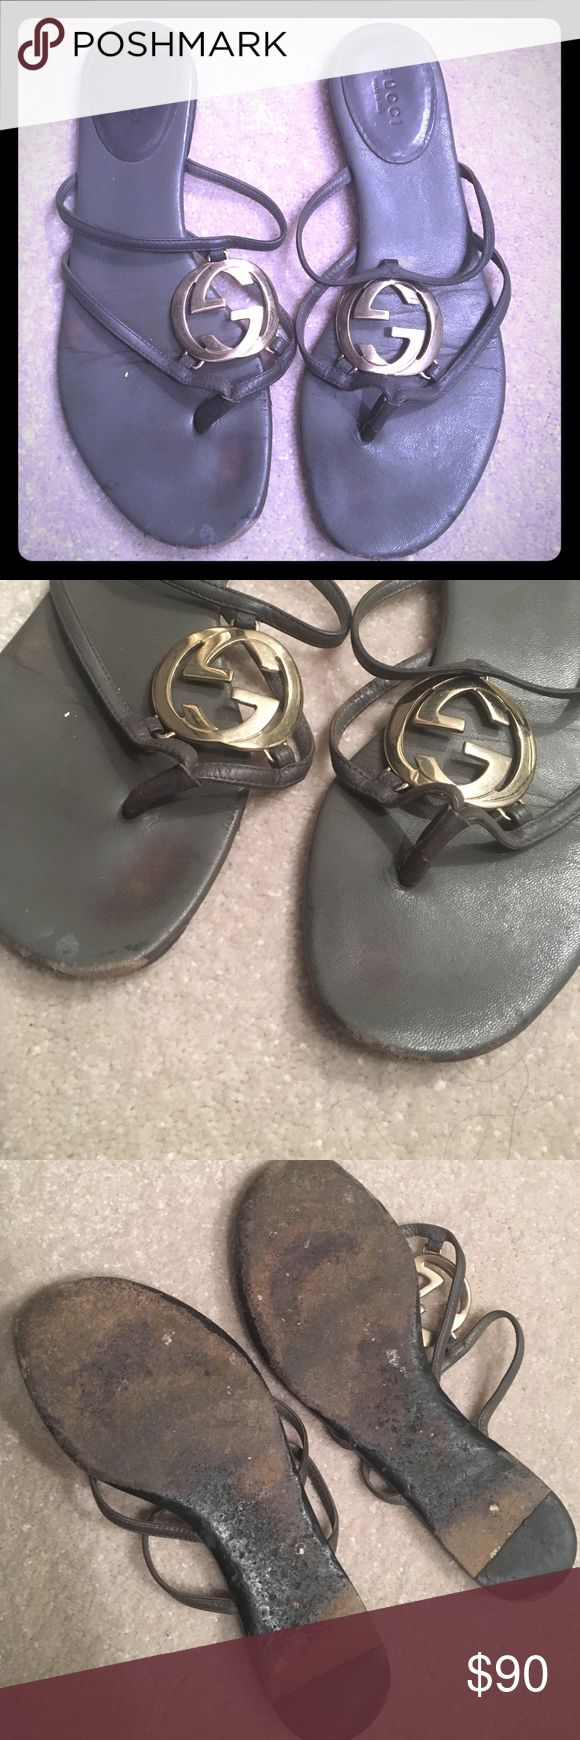 Gucci GG Grey Flip Flop Sandals - Women's Size 6 Authentic Gucci GG Grey / Gold Flip Flop Sandals - Women's Size 6 -- WORN please refer to photos; comes as is Gucci Shoes Sandals